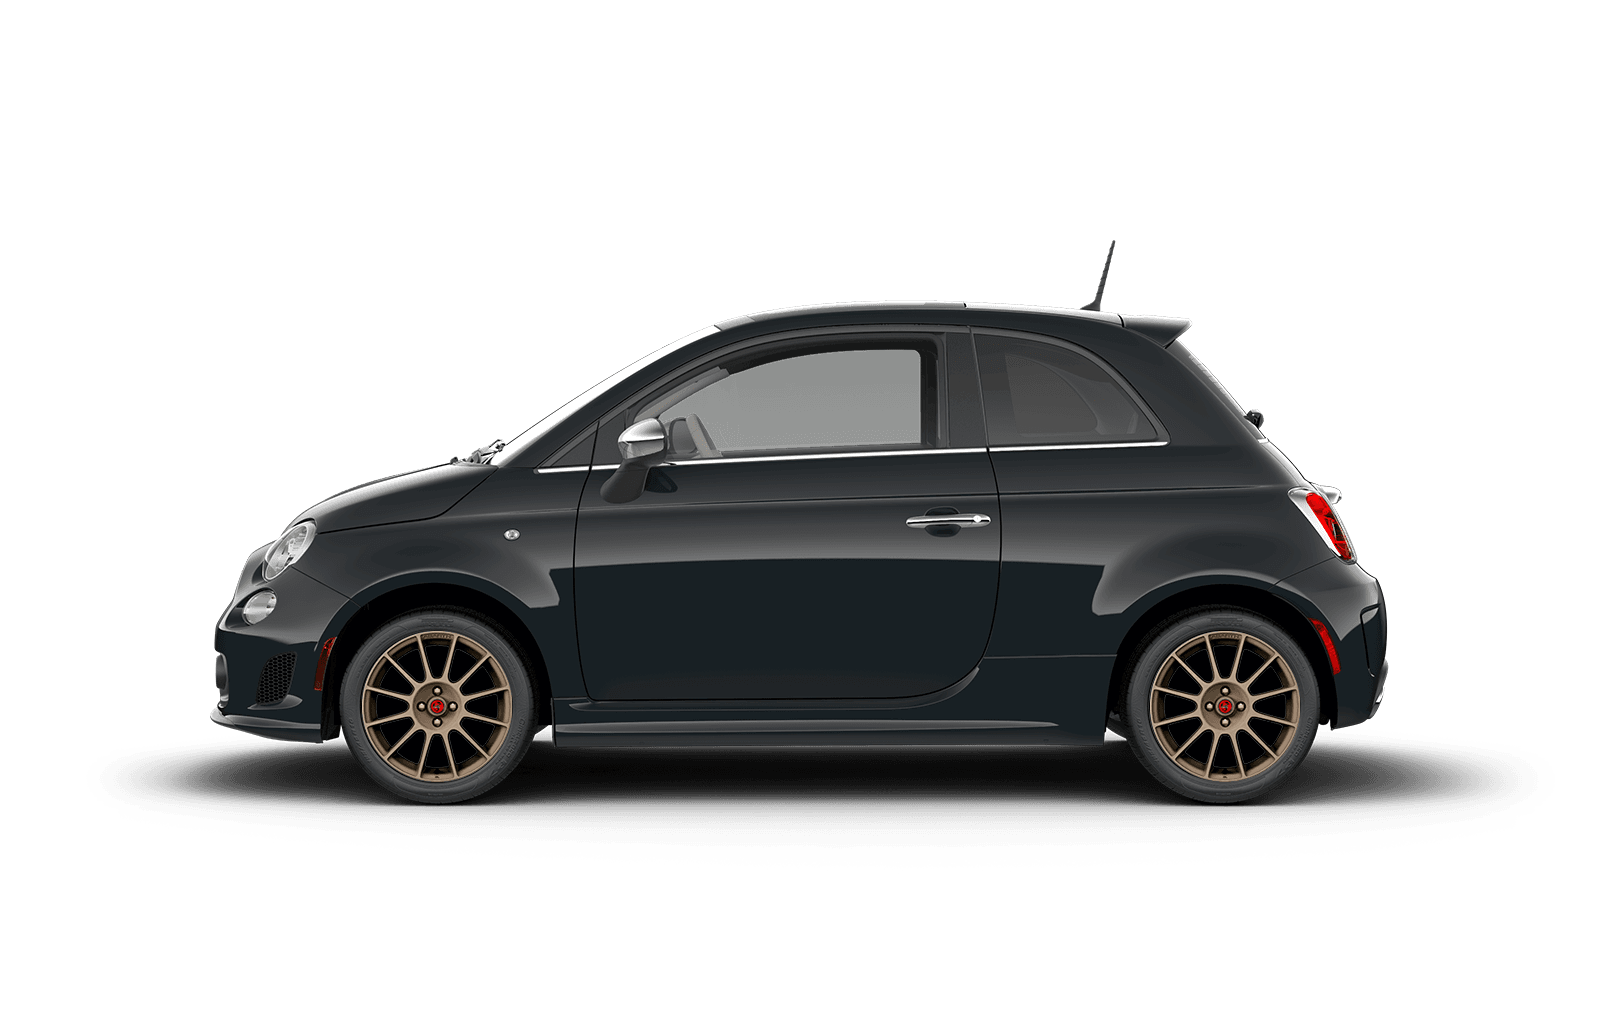 17-Inch Hyper Bronze Forged Aluminum Wheels  Available on 2019 FIAT 500 Abarth